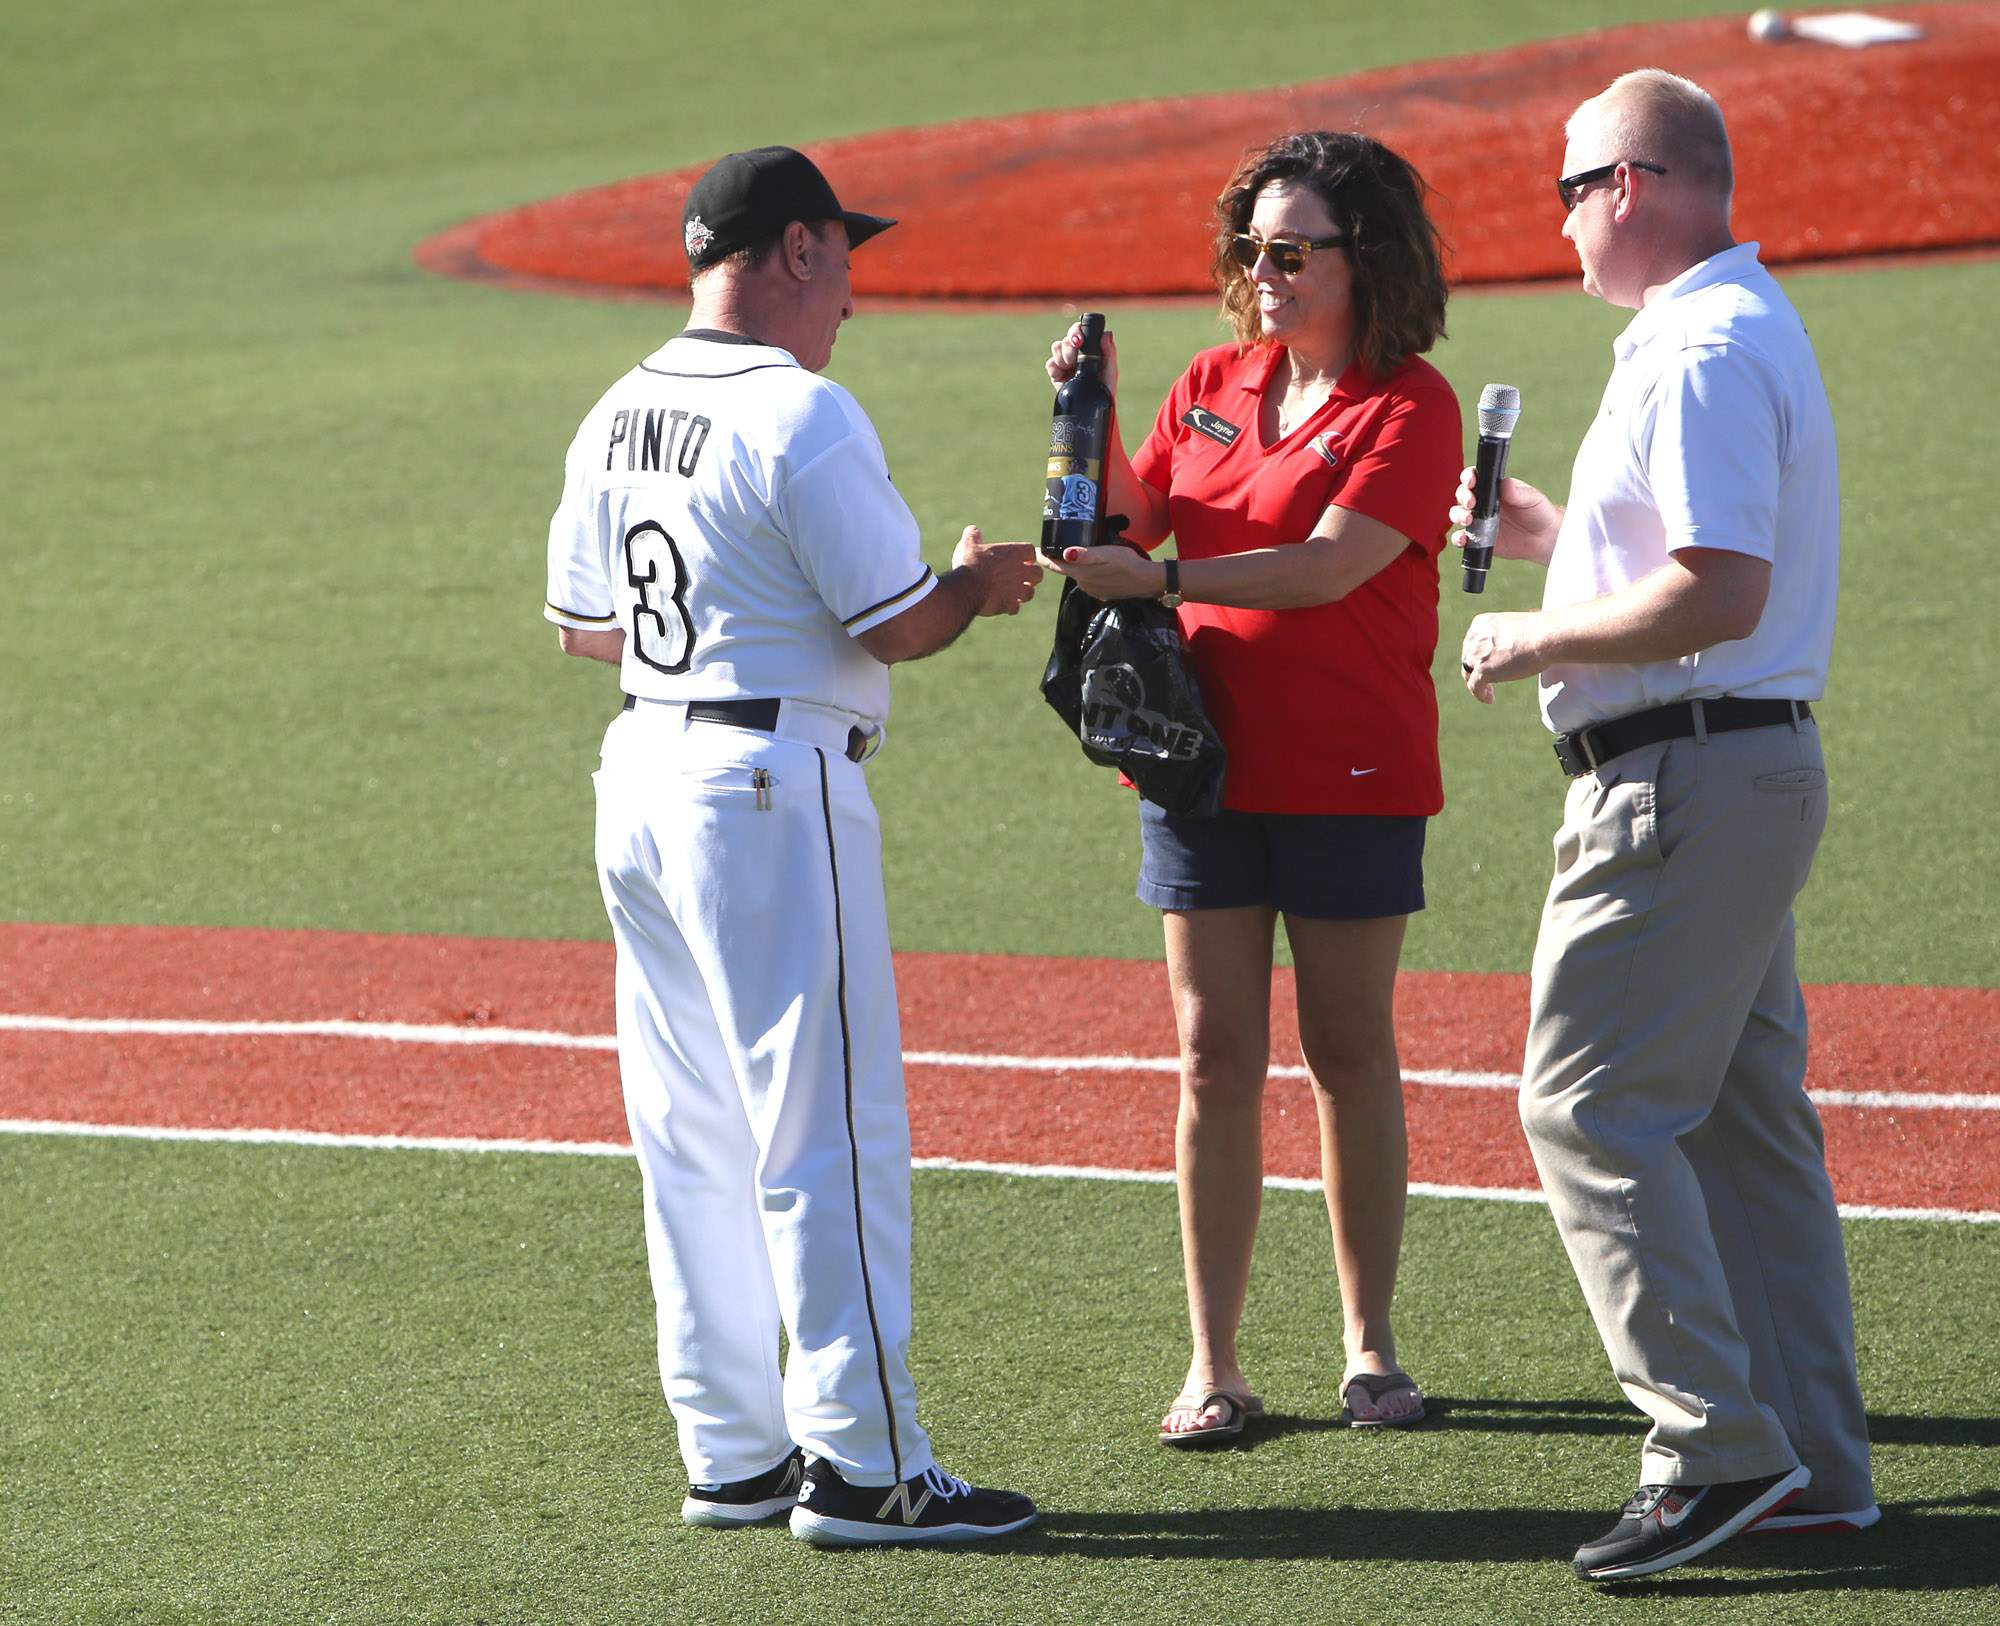 Miners manager Mike Pinto is presented a custom wine bottle from owner Jayne Simmons for becoming the Frontier League's all-time winningest manager.